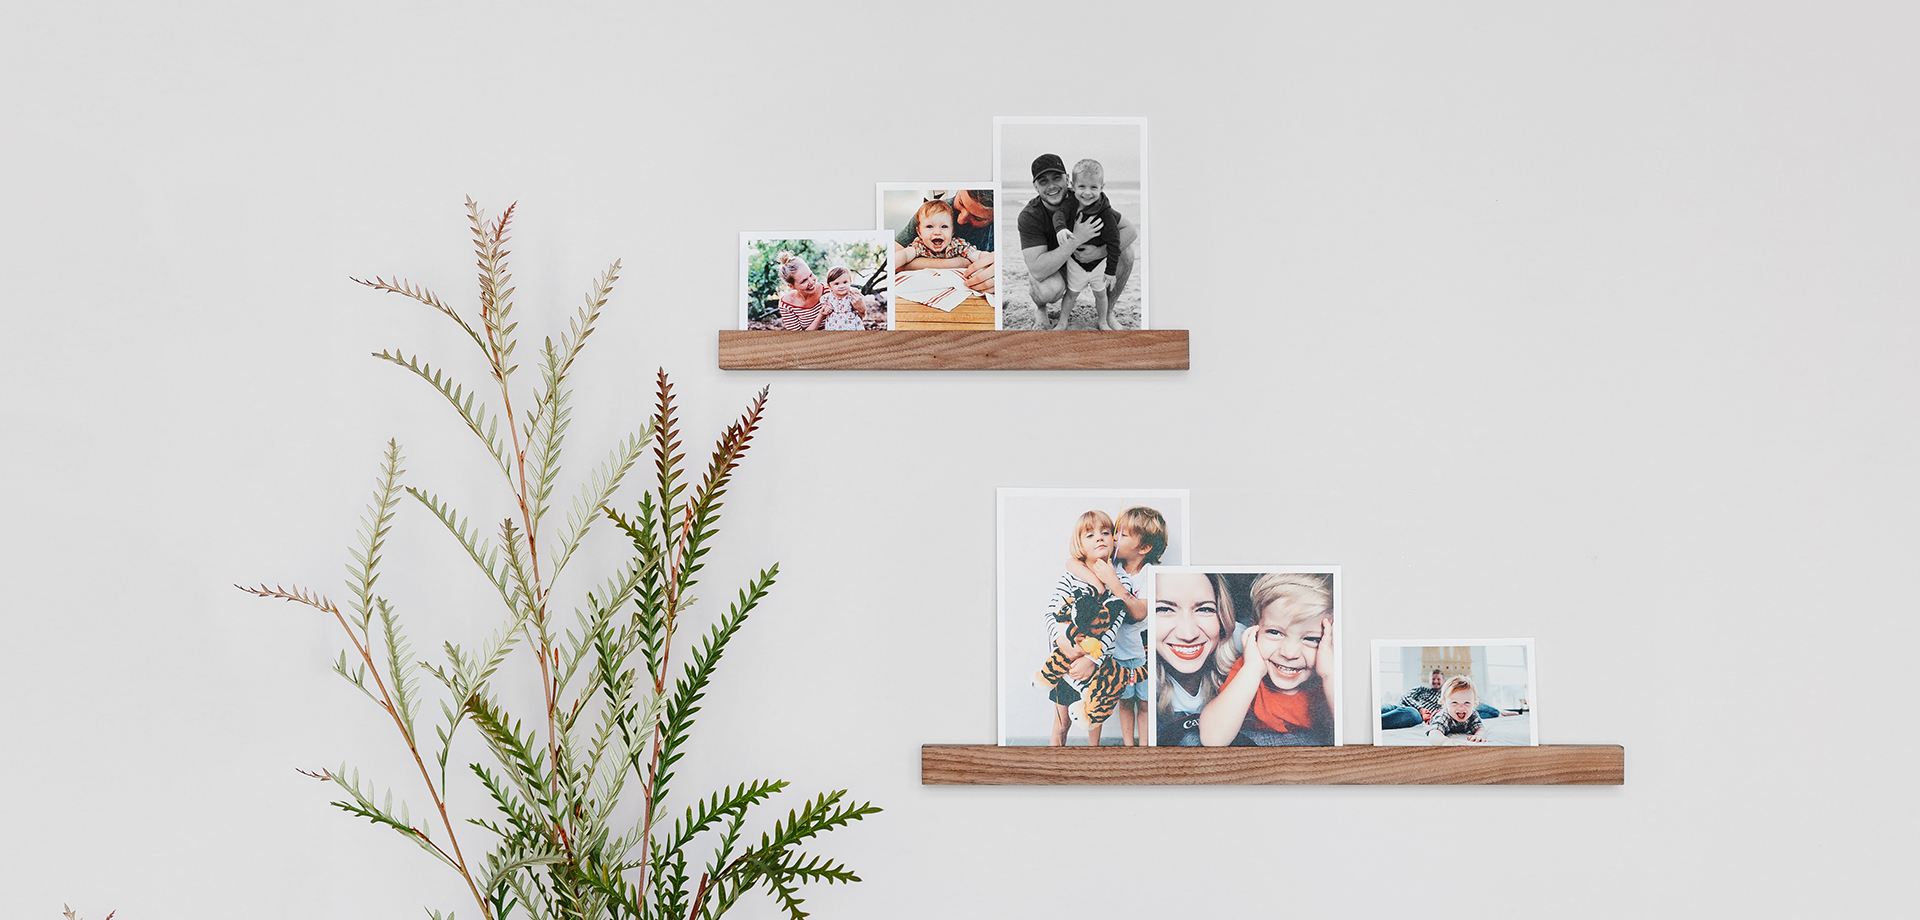 Photo display ideas in action in the form of prints on a wooden photo ledge